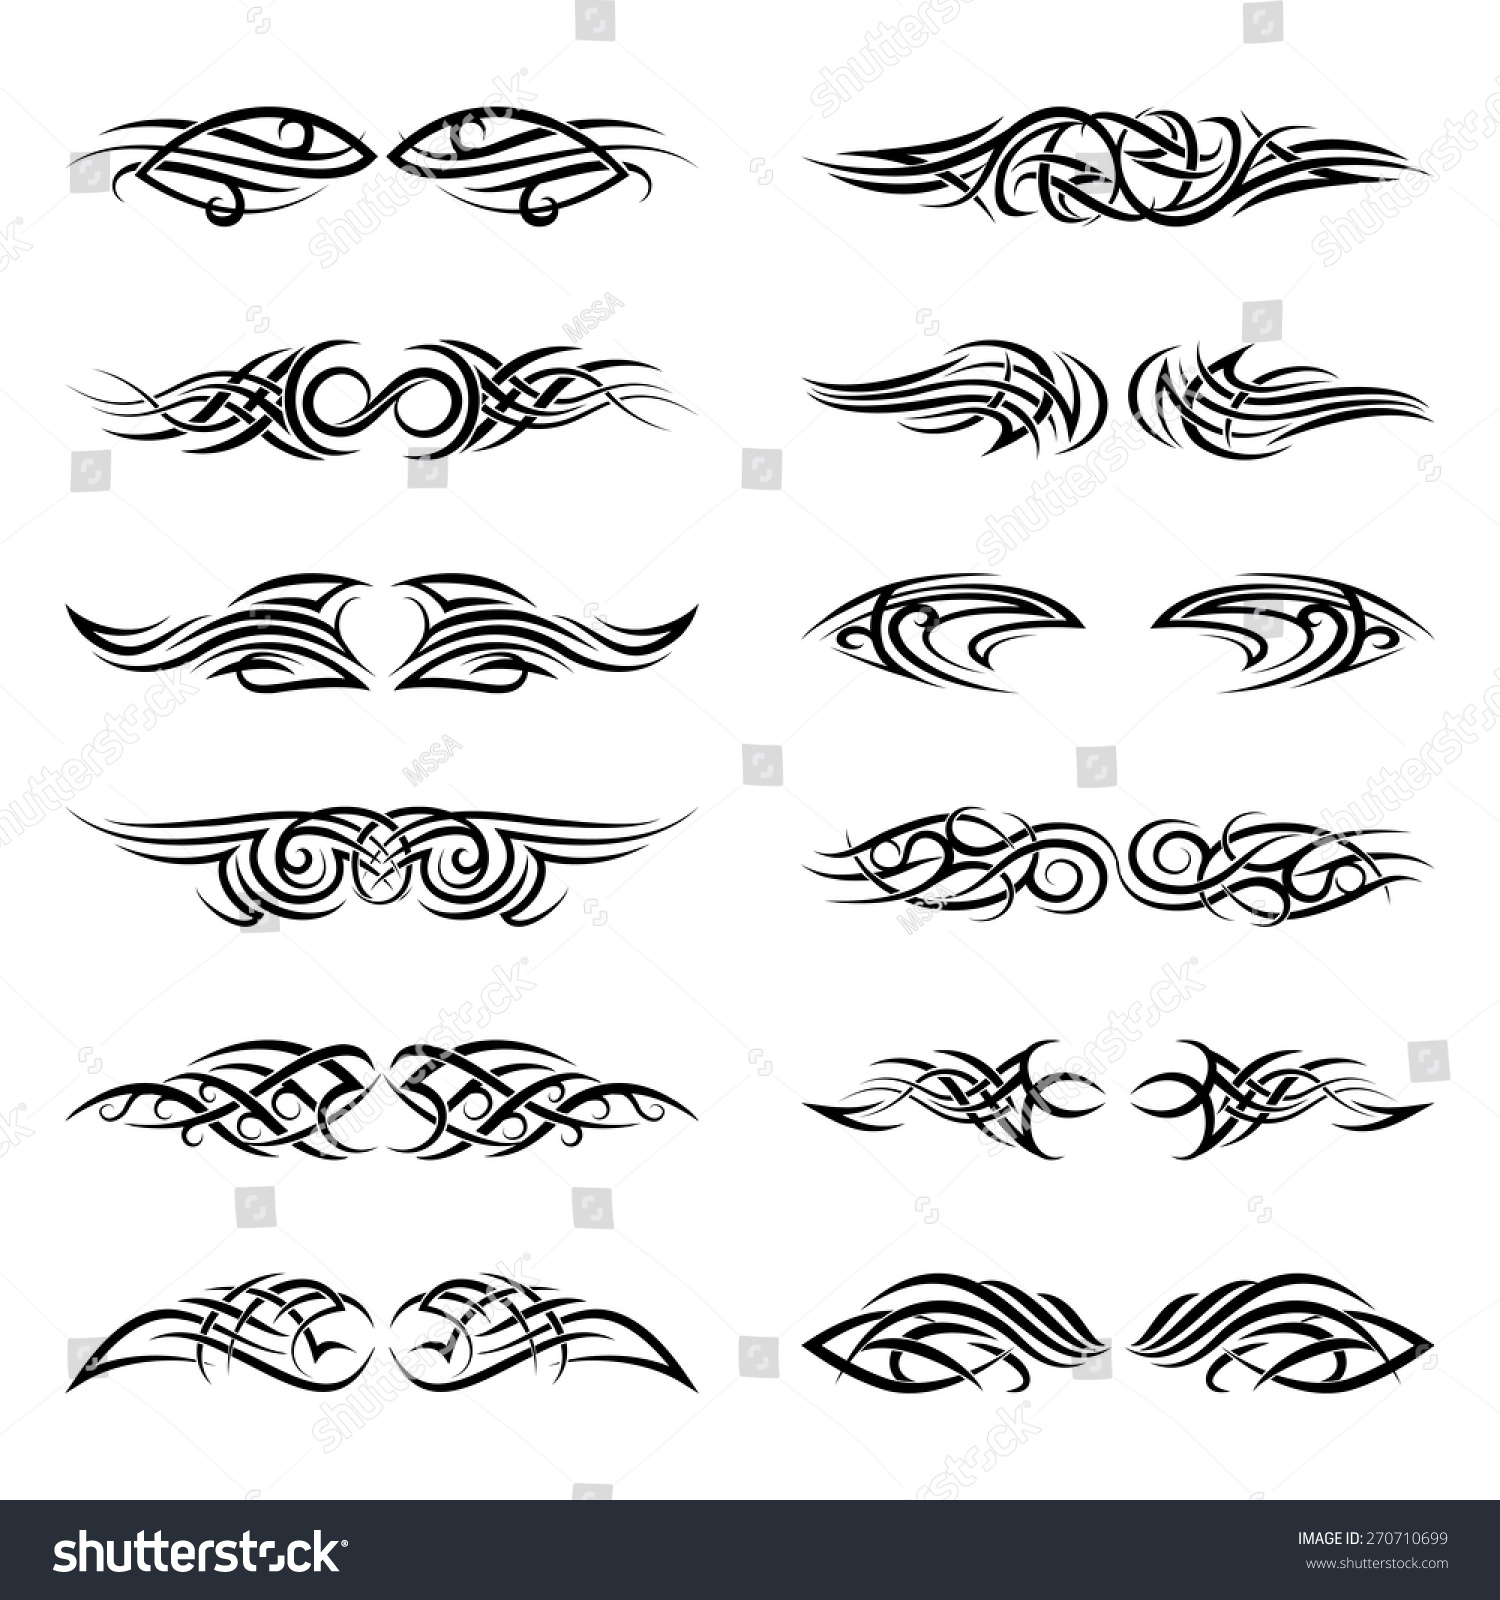 Tribal-Tattoos stock-vector-vector-tribal-tattoos-pattern-art-ornament-shape-black-illustration-creative-element-270710699